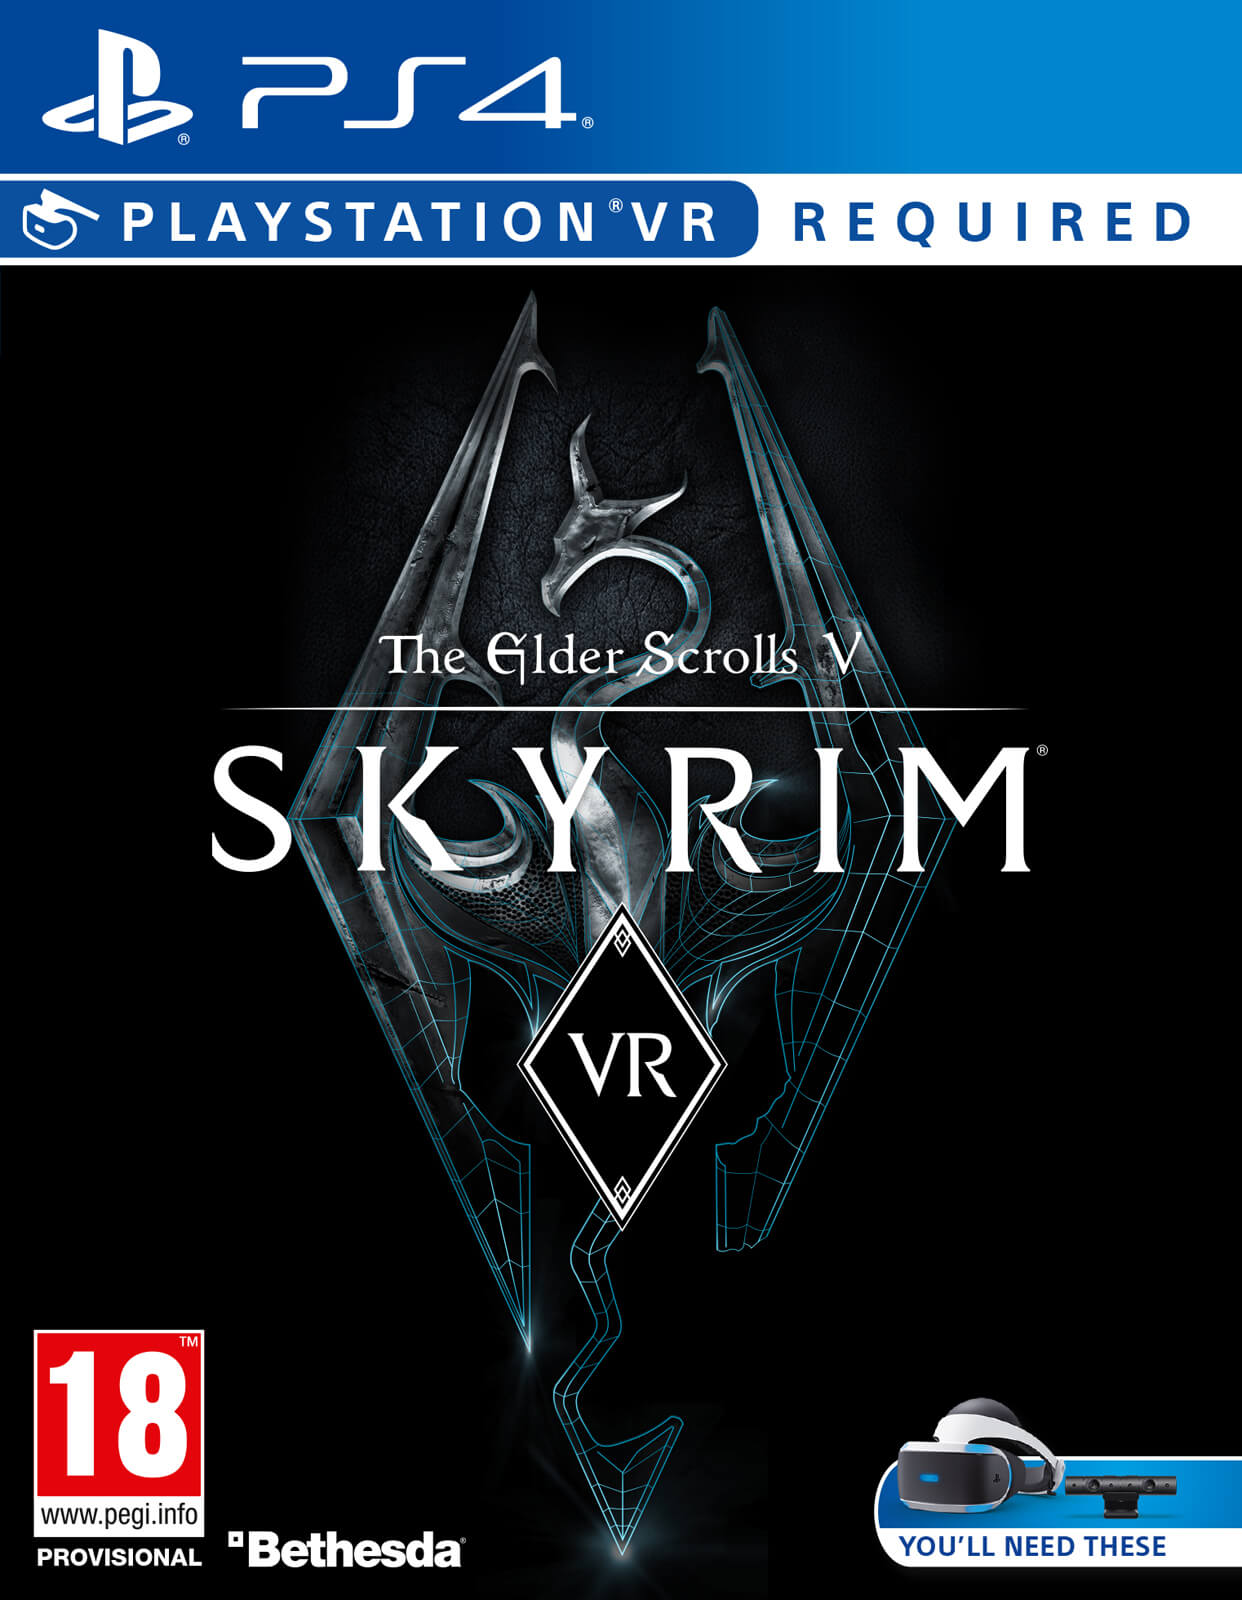 The Elder Scrolls V: Skyrim VR - PSVR